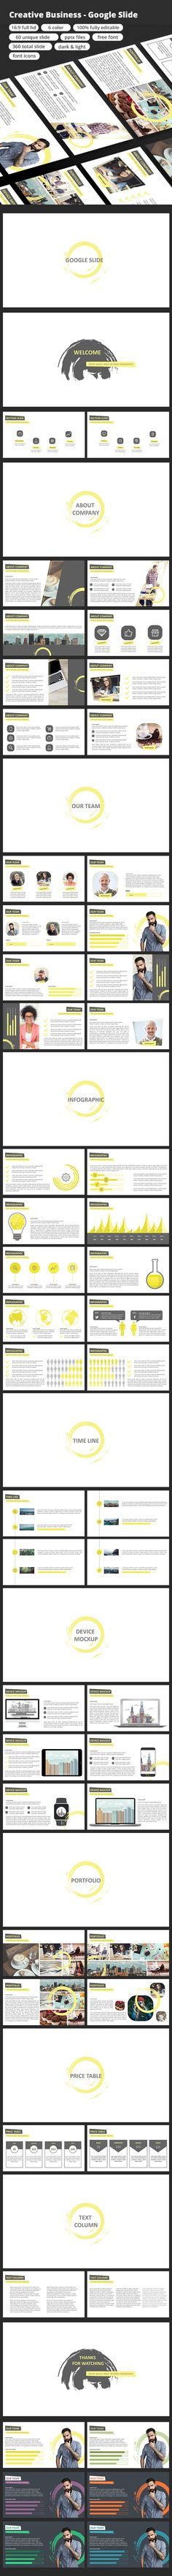 Pin by Best Graphic Design on Google Slides Templates | Pinterest ...